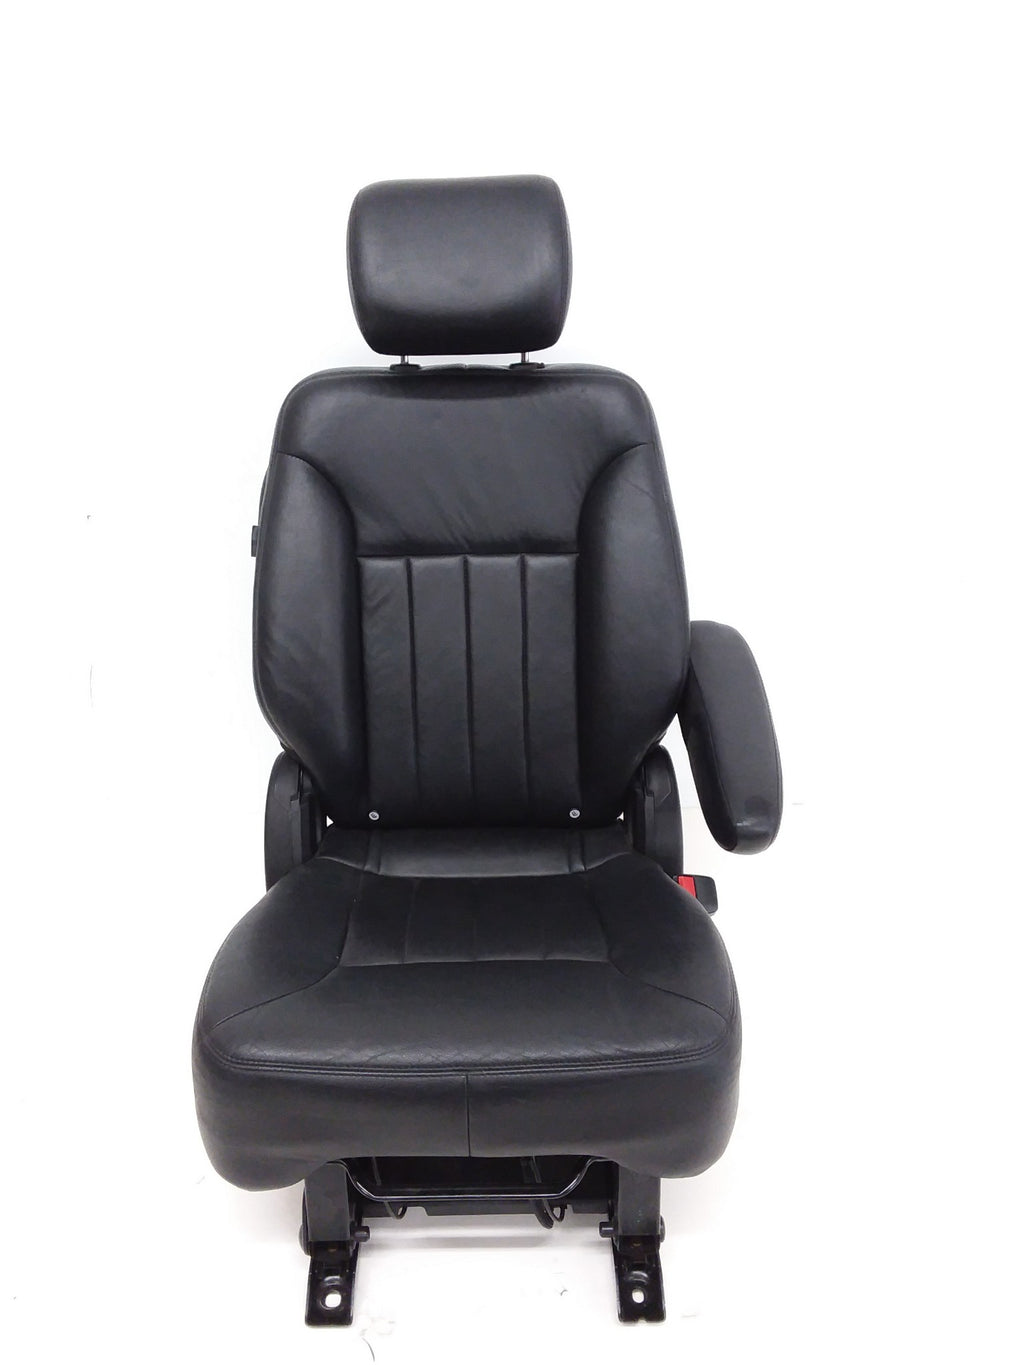 2006- 2007 Mercedes-Benz R350 Middle Right Seat Black Leather OEM